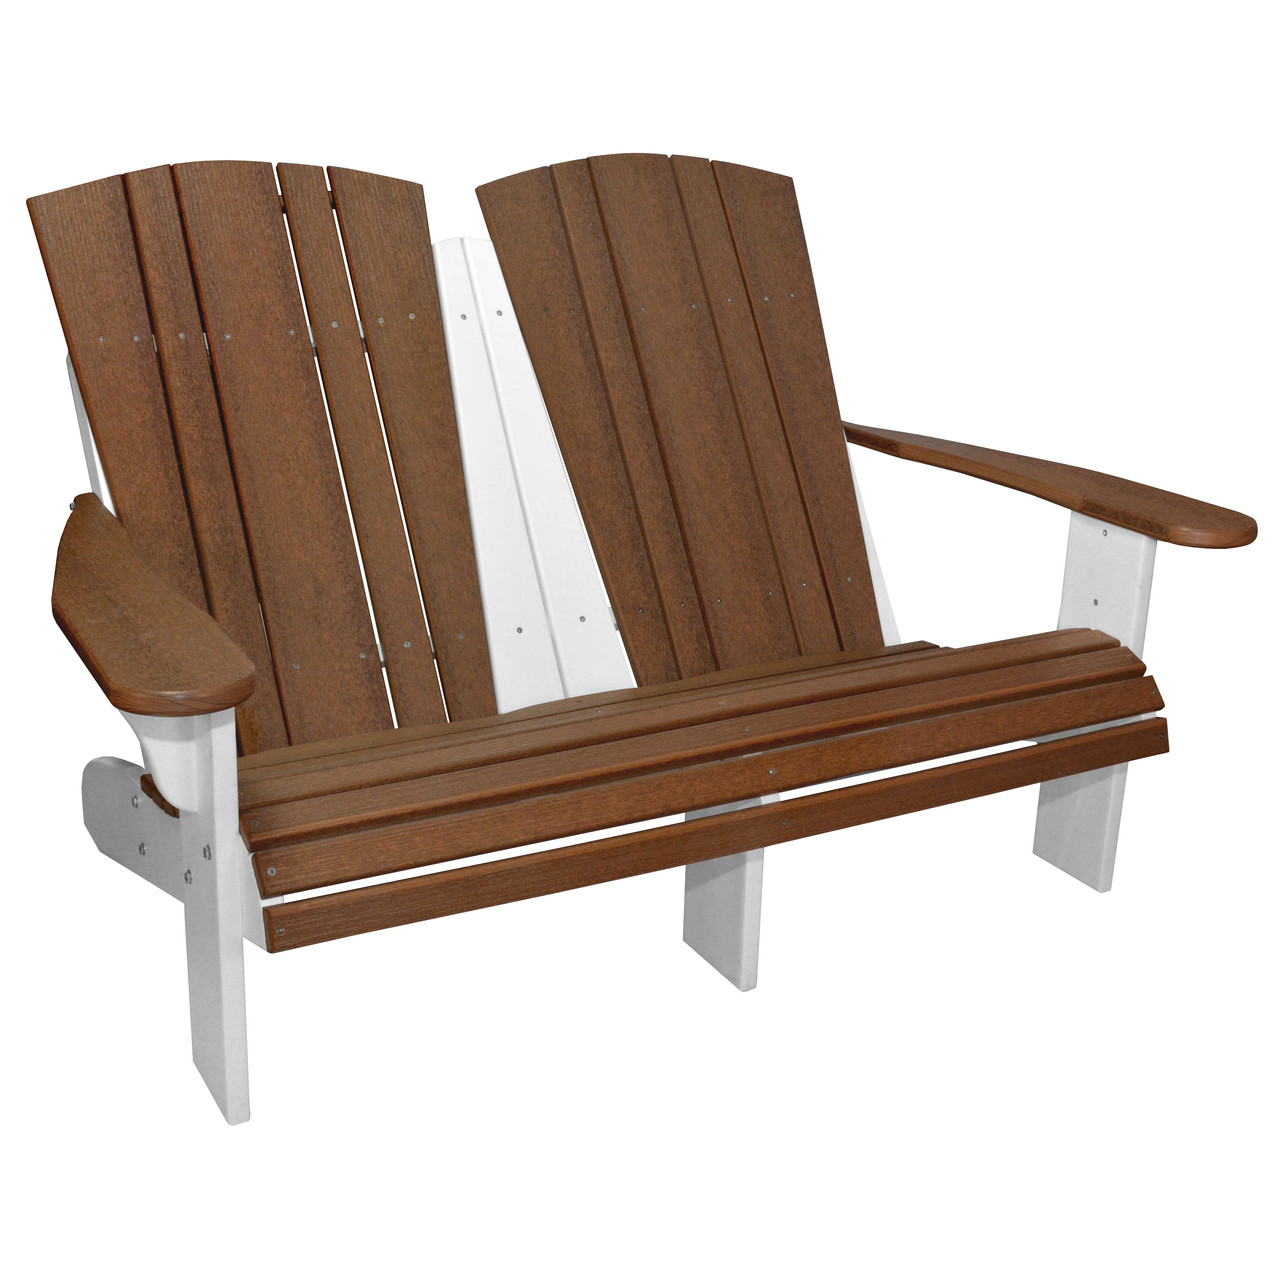 Cool Harbor Collection Fixed Double Adirondack Chair Bralicious Painted Fabric Chair Ideas Braliciousco